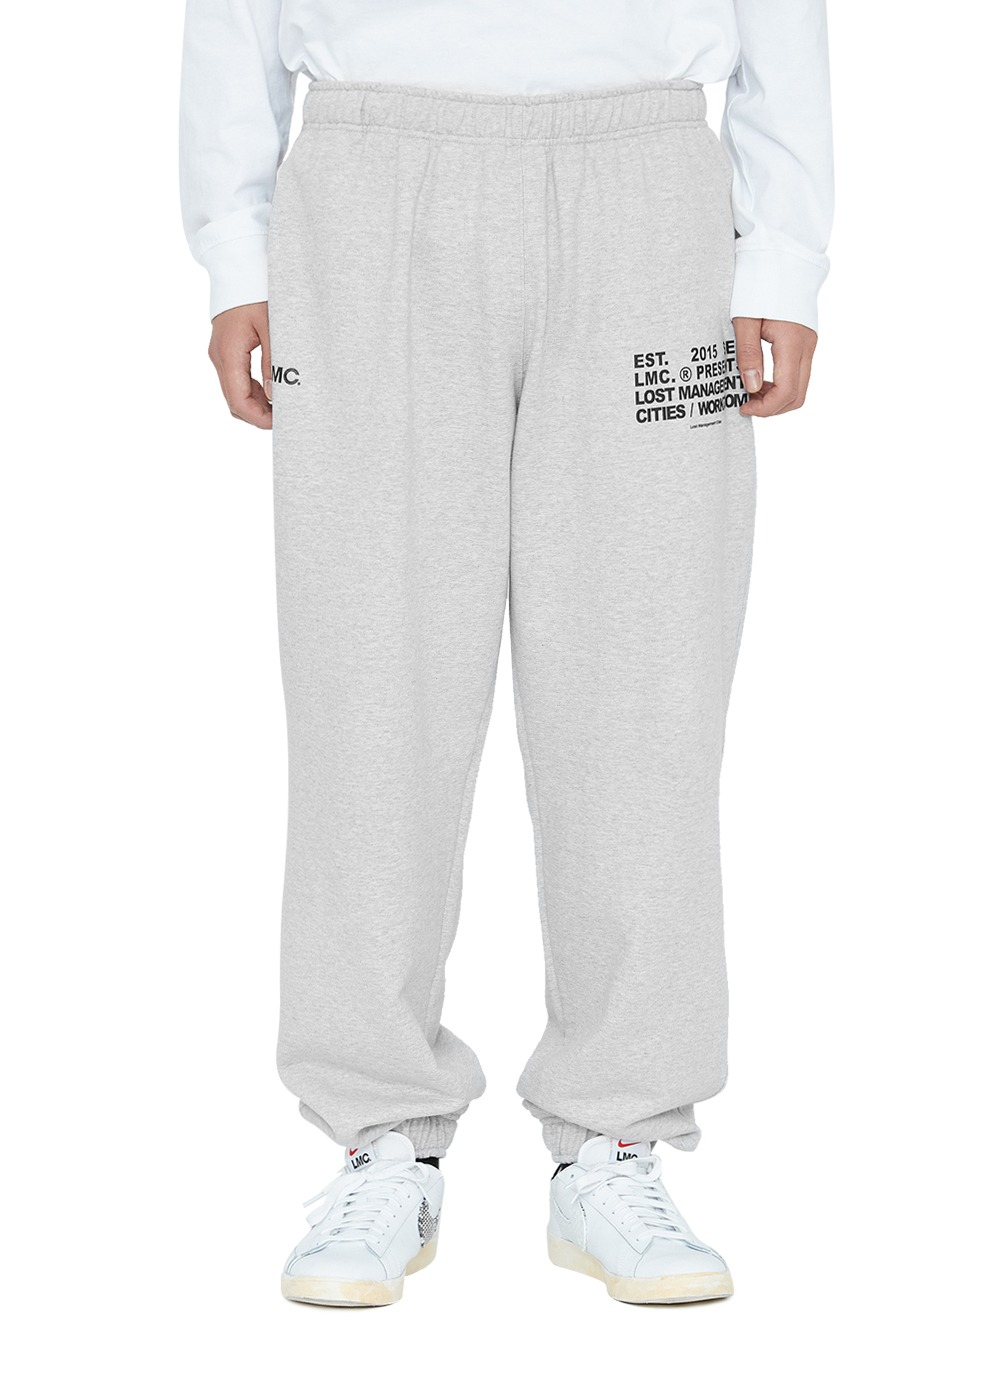 LMC WORKROOM SWEAT PANTS heather gray